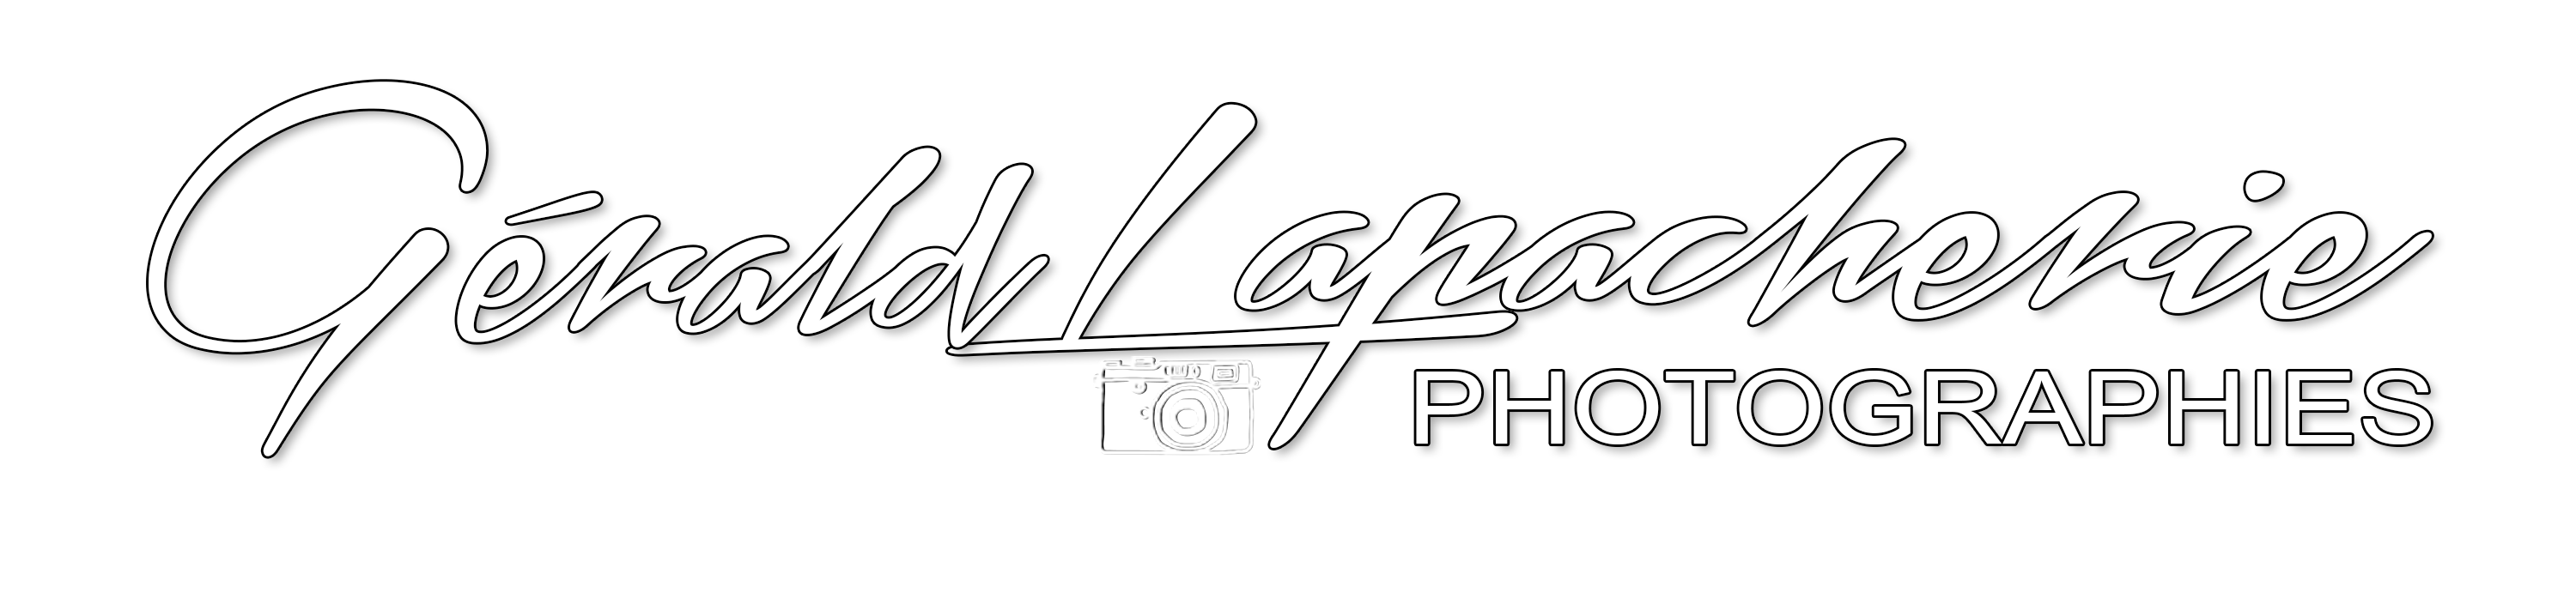 Gérald Lapacherie Photographies